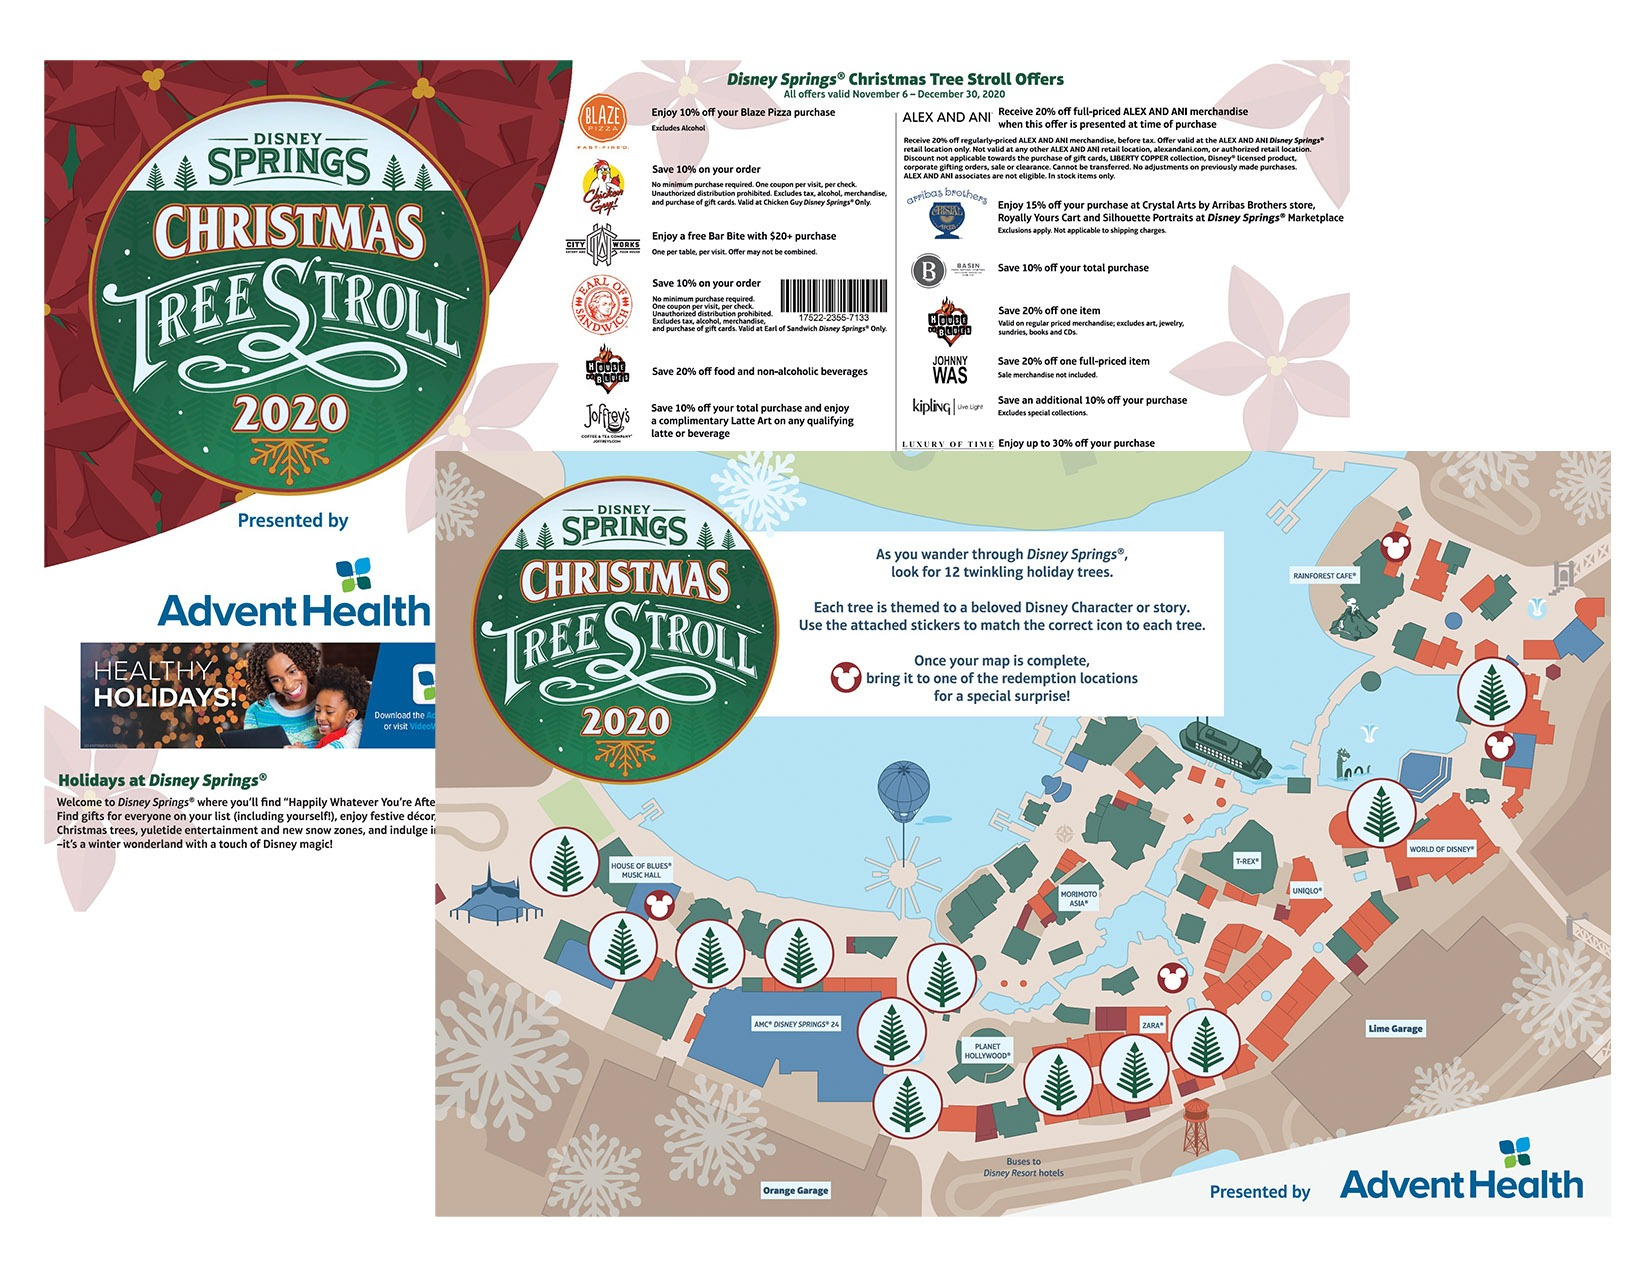 Jolly holiday scavenger hunt that allows you to safely wander and explore the Disney Springs Christmas Tree Stroll presented by AdventHealth